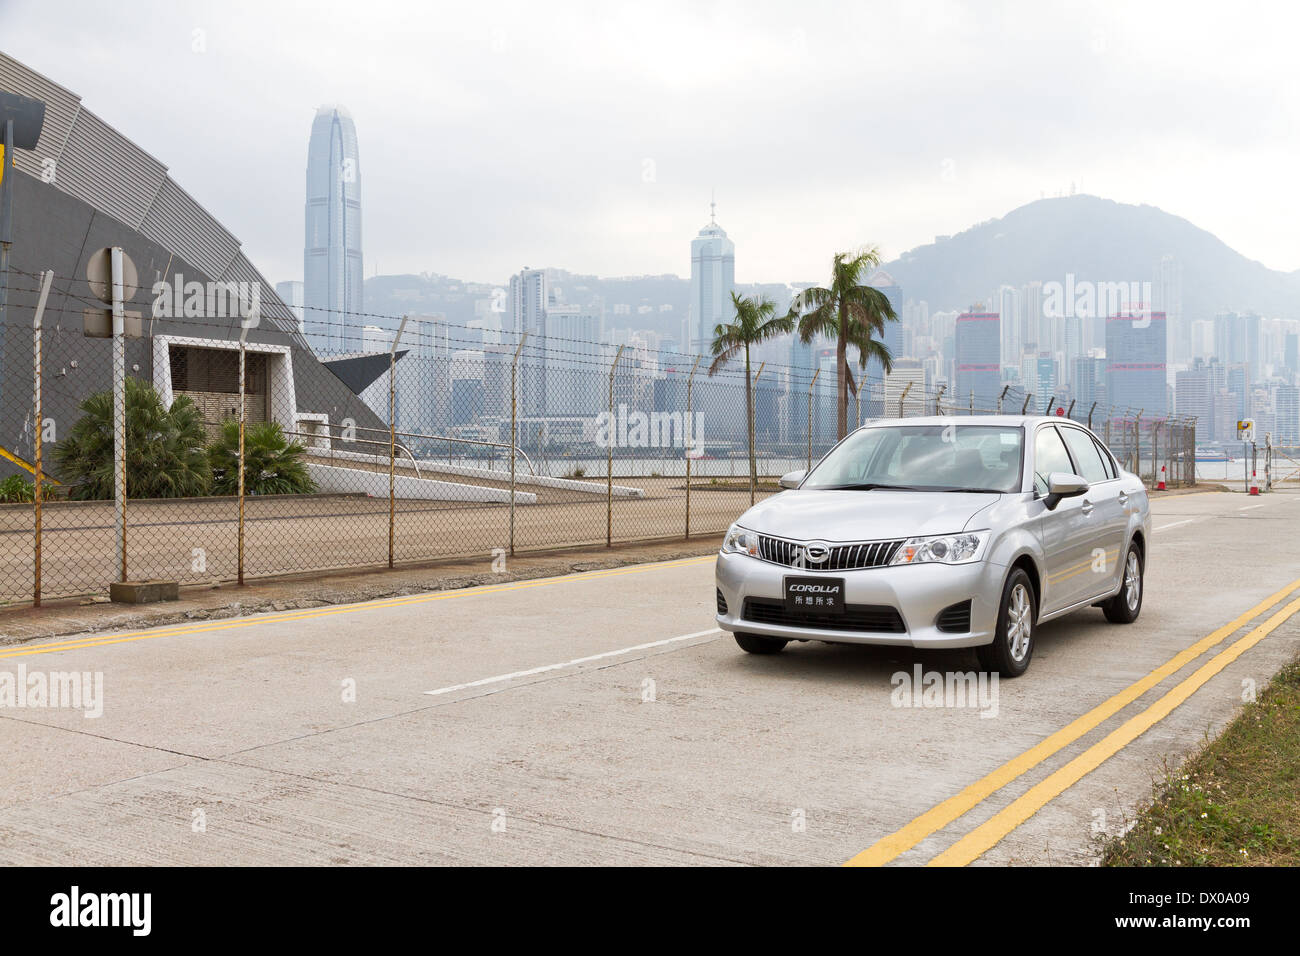 The entry level sedan in japan market - Stock Image